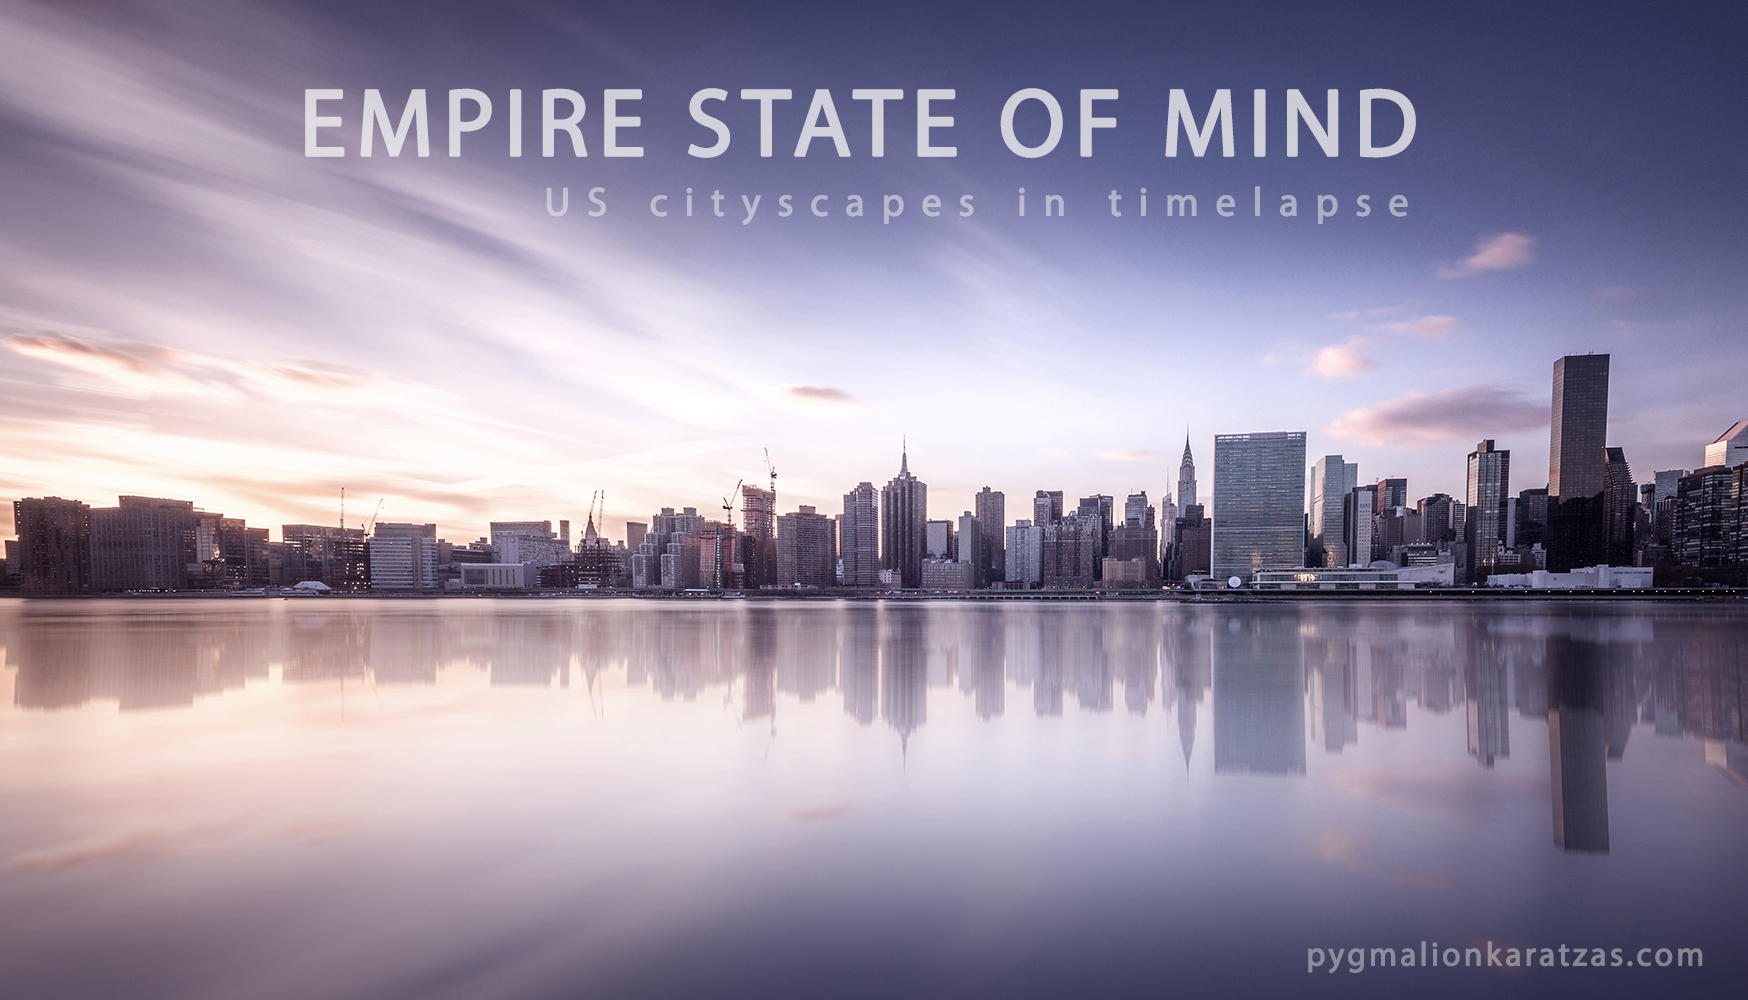 'Empire State of Mind' video